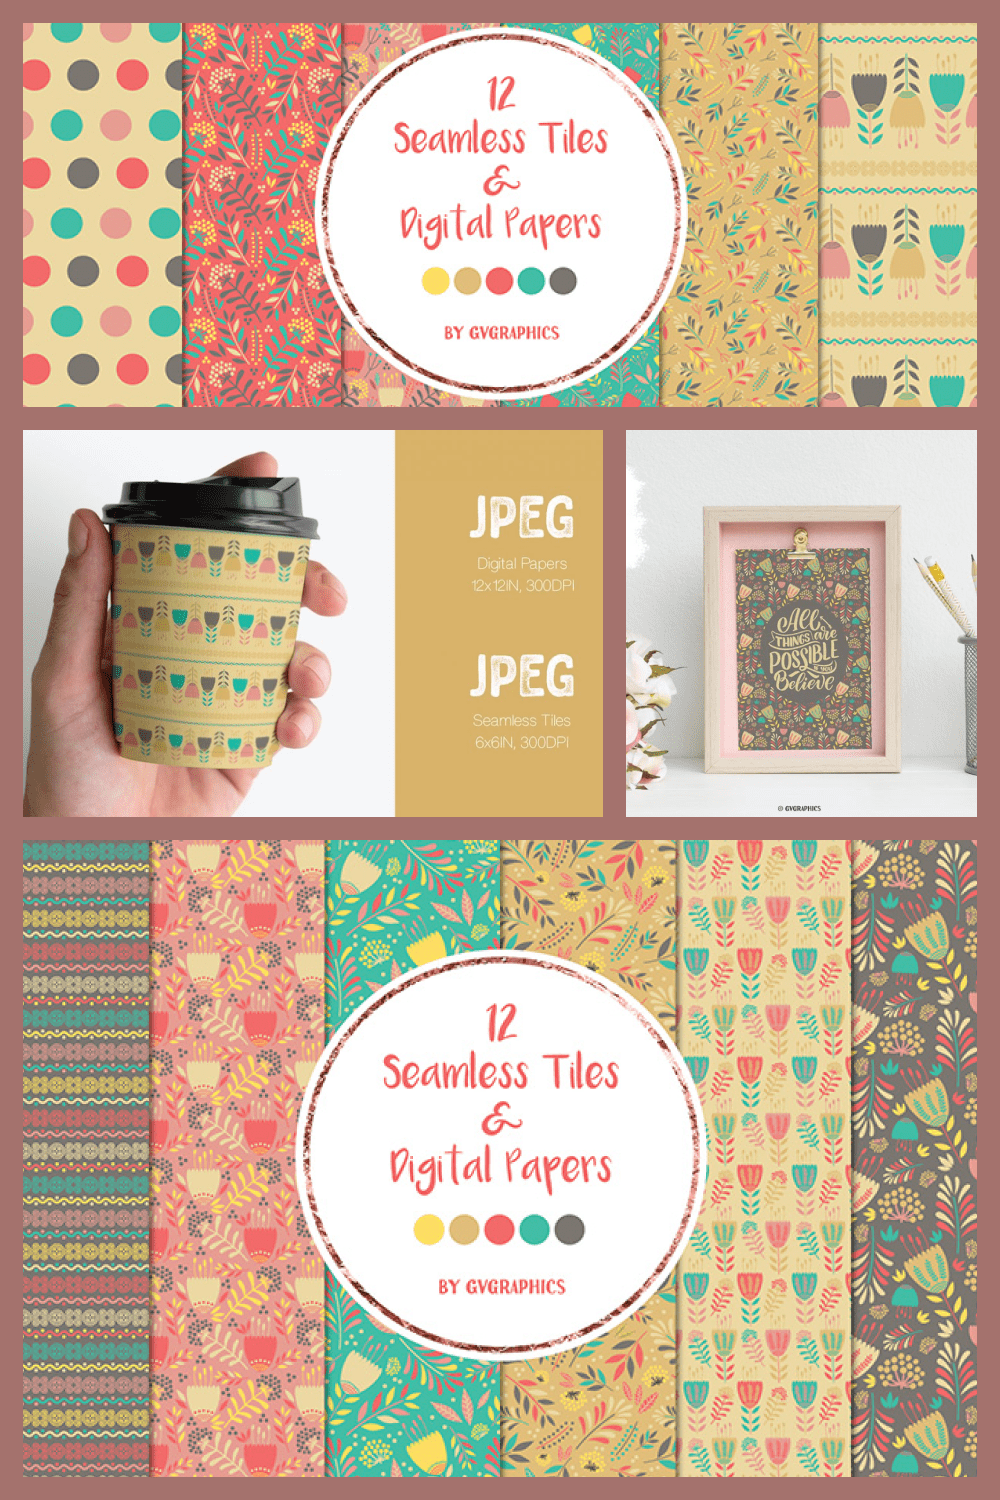 Abstract Flowers Seamless tiles and Digital papers - MasterBundles - Pinterest Collage Image.